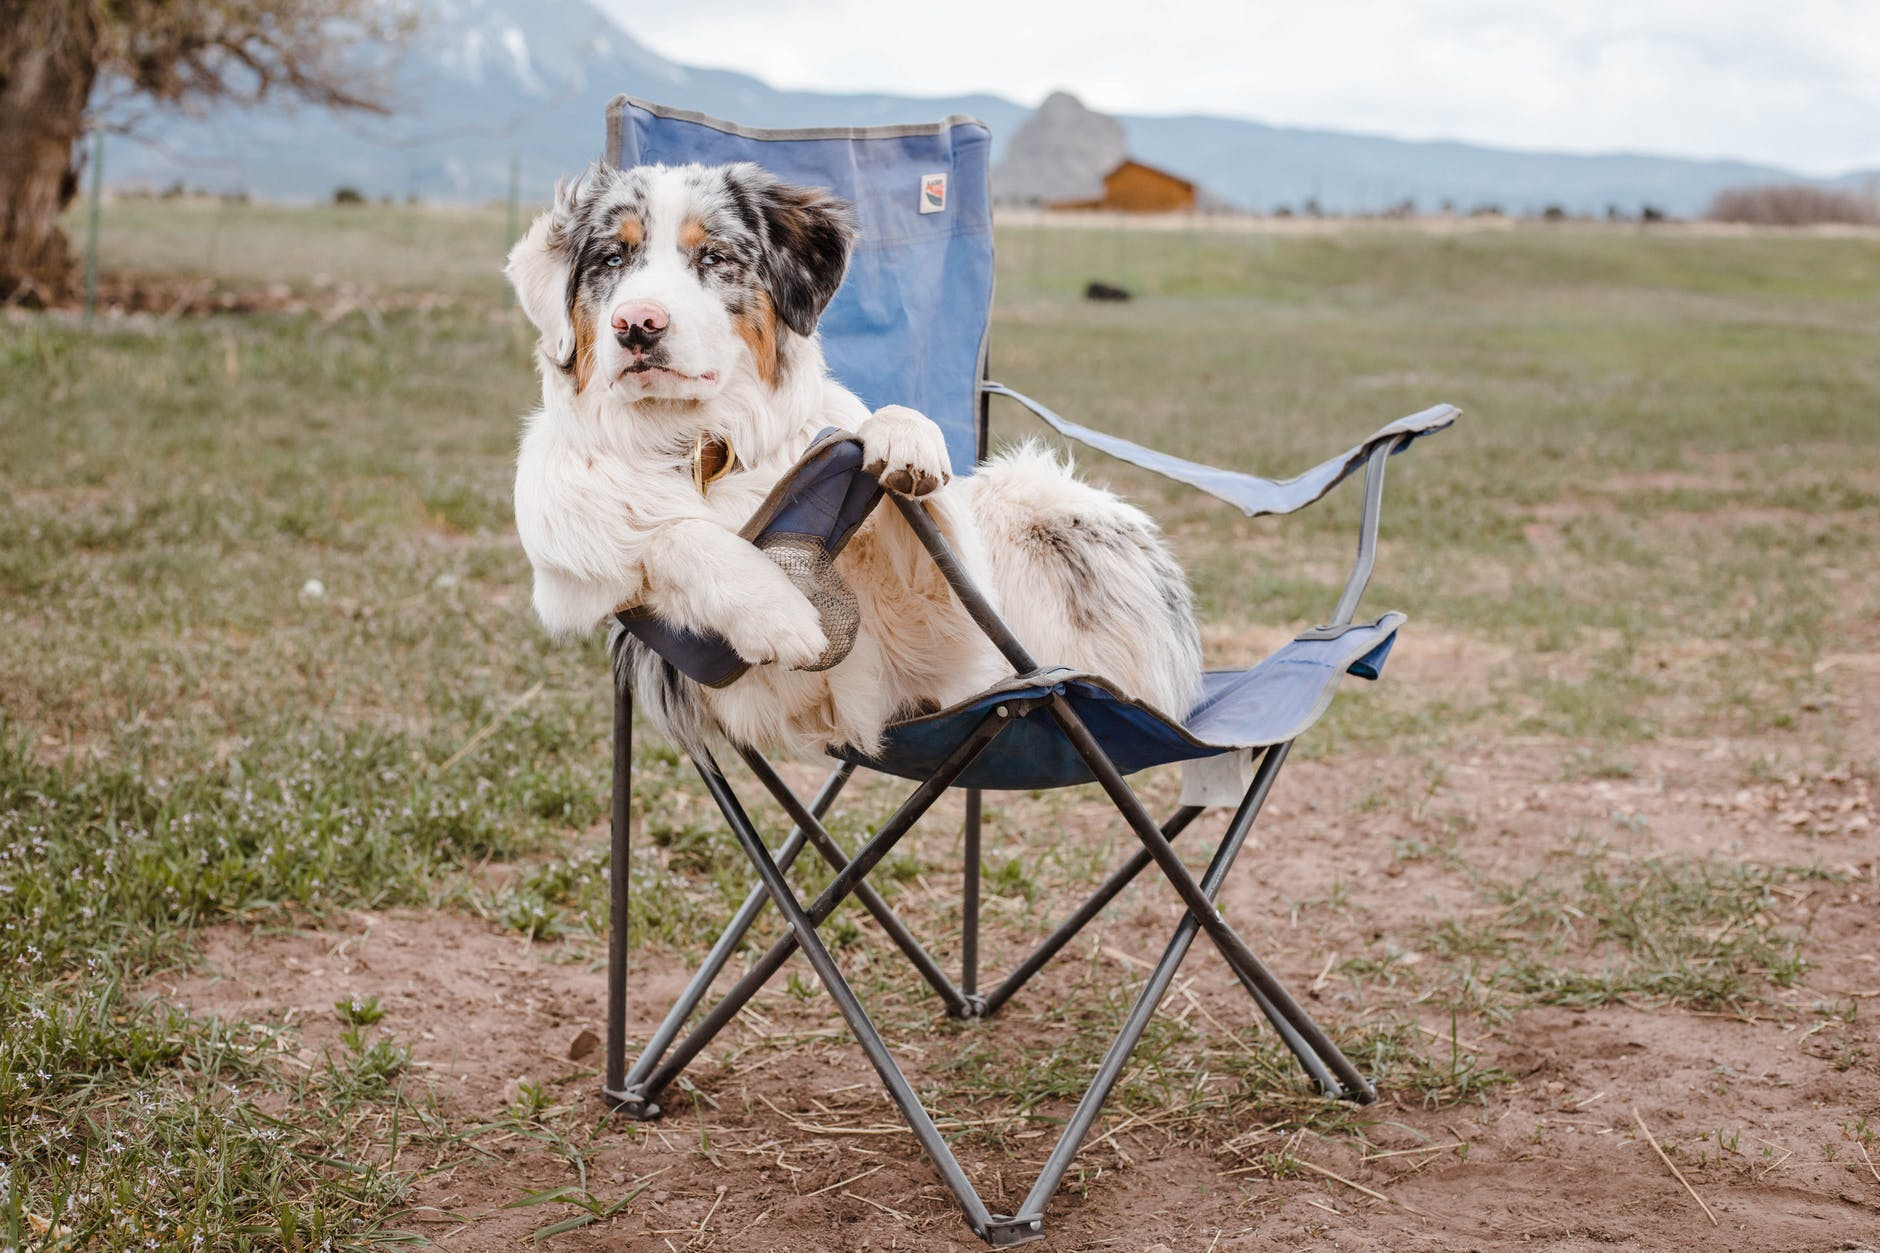 Dog relaxing on camp chair